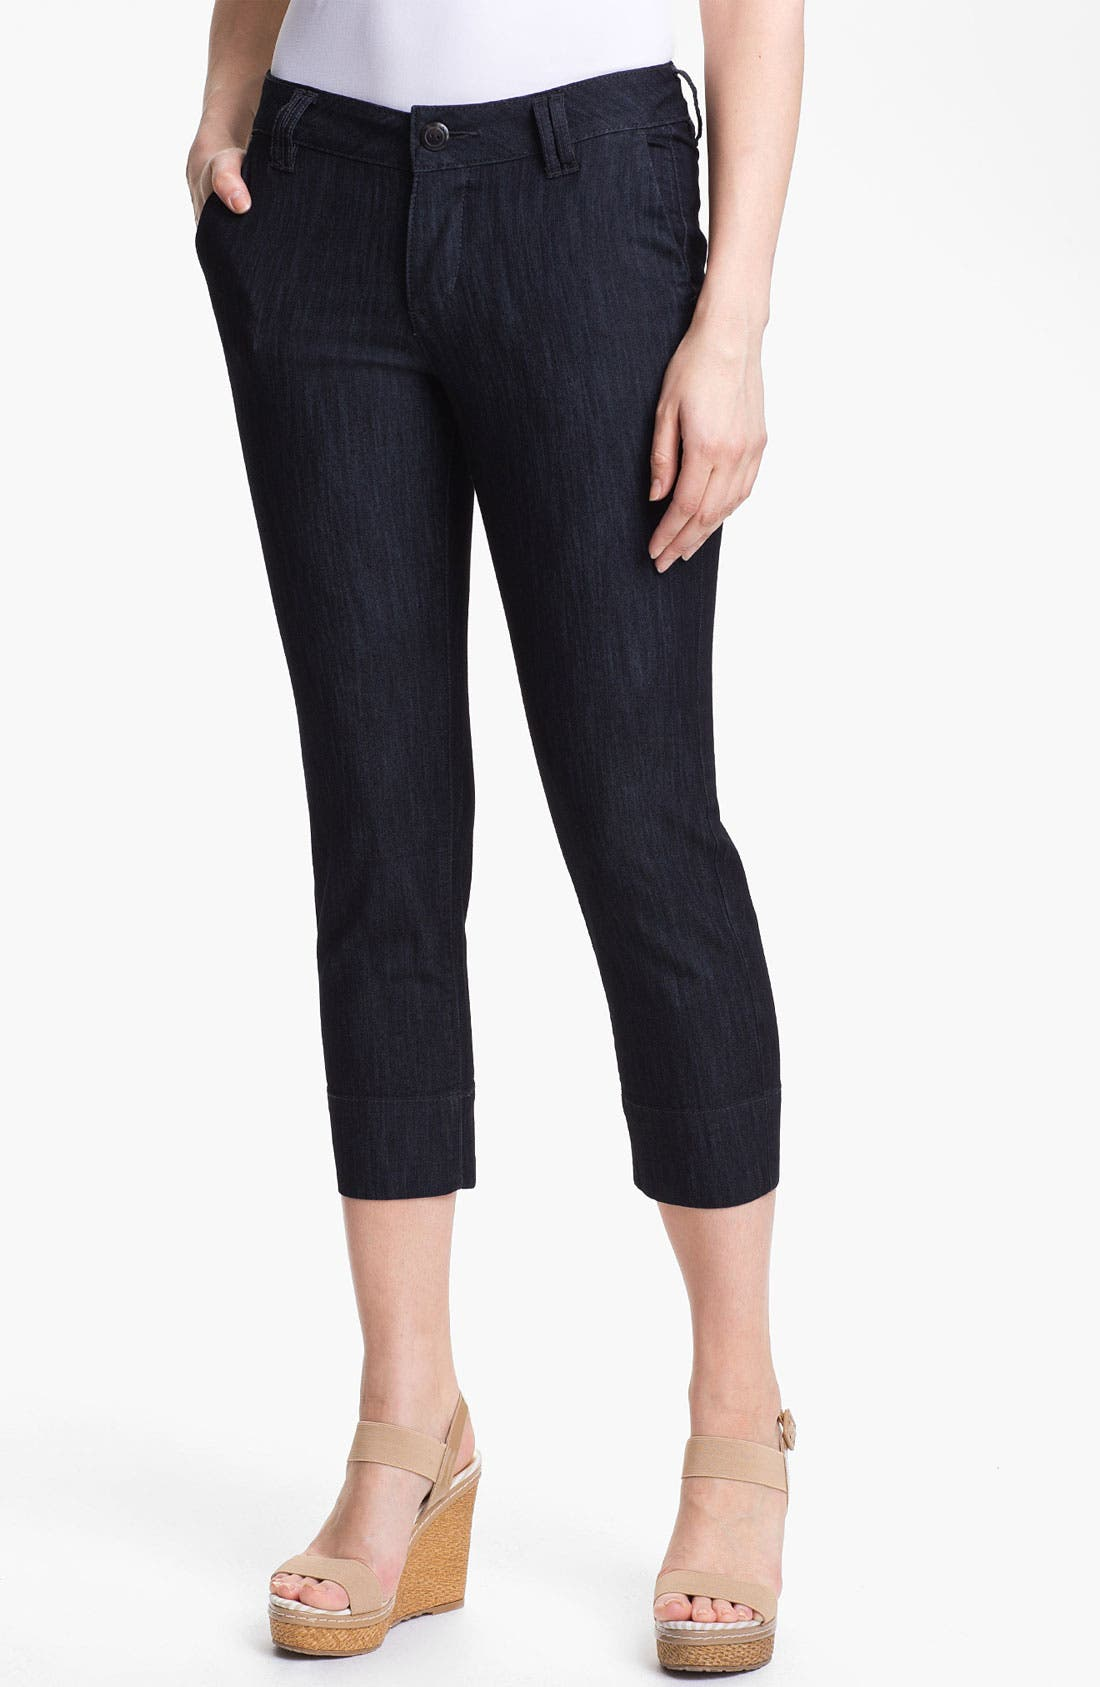 Alternate Image 1 Selected - Jag Jeans 'Maitland' Stretch Crop Jeans